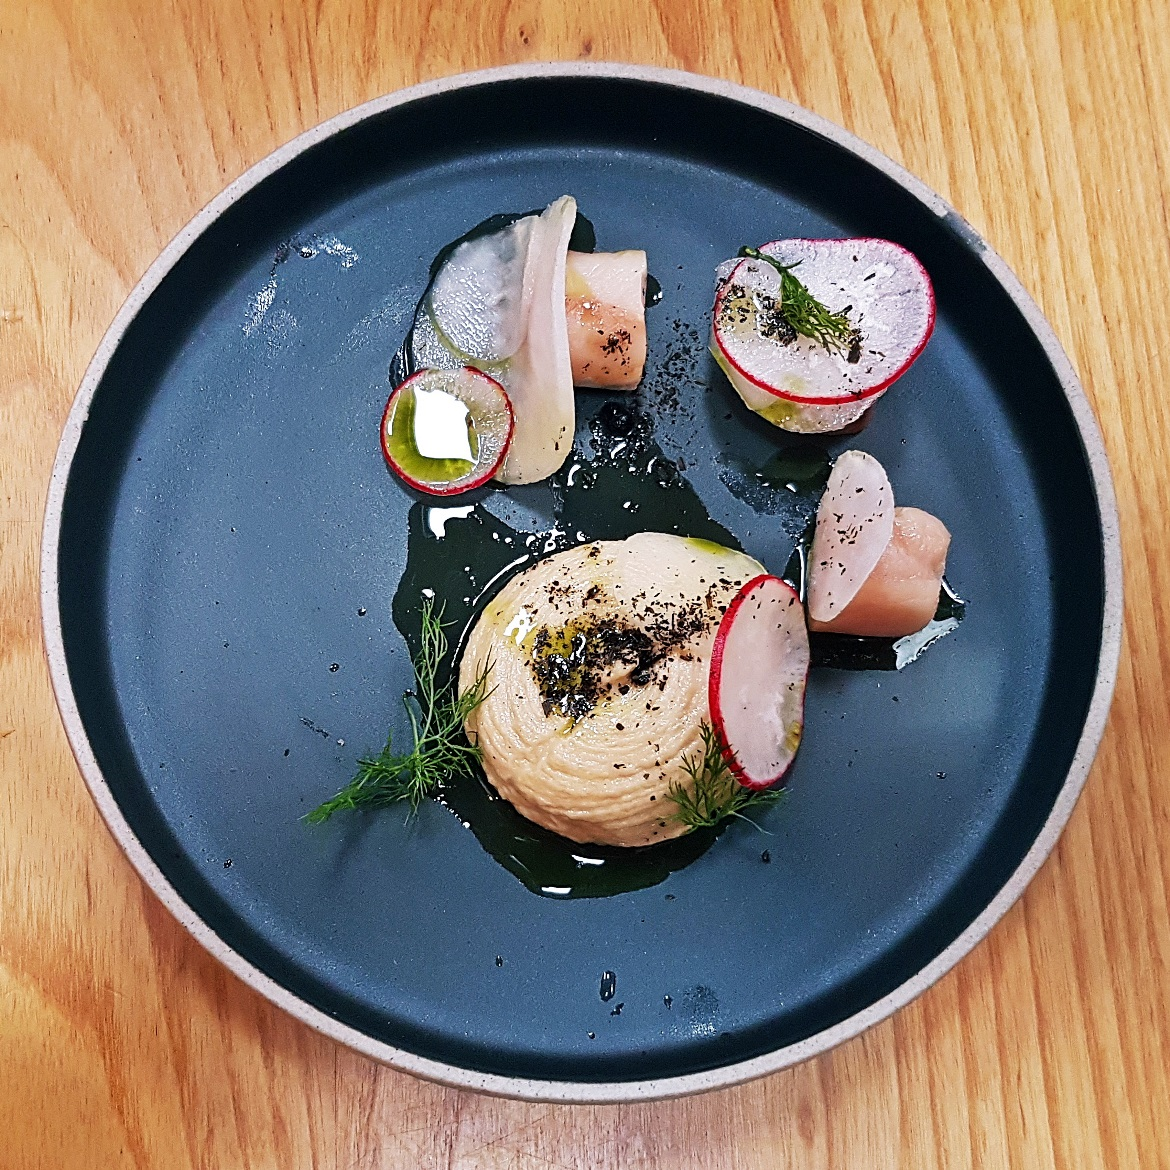 Mackerel - Restaurant Review of Shears Yard, Leeds Restaurant Week menu by BeckyBecky Blogs